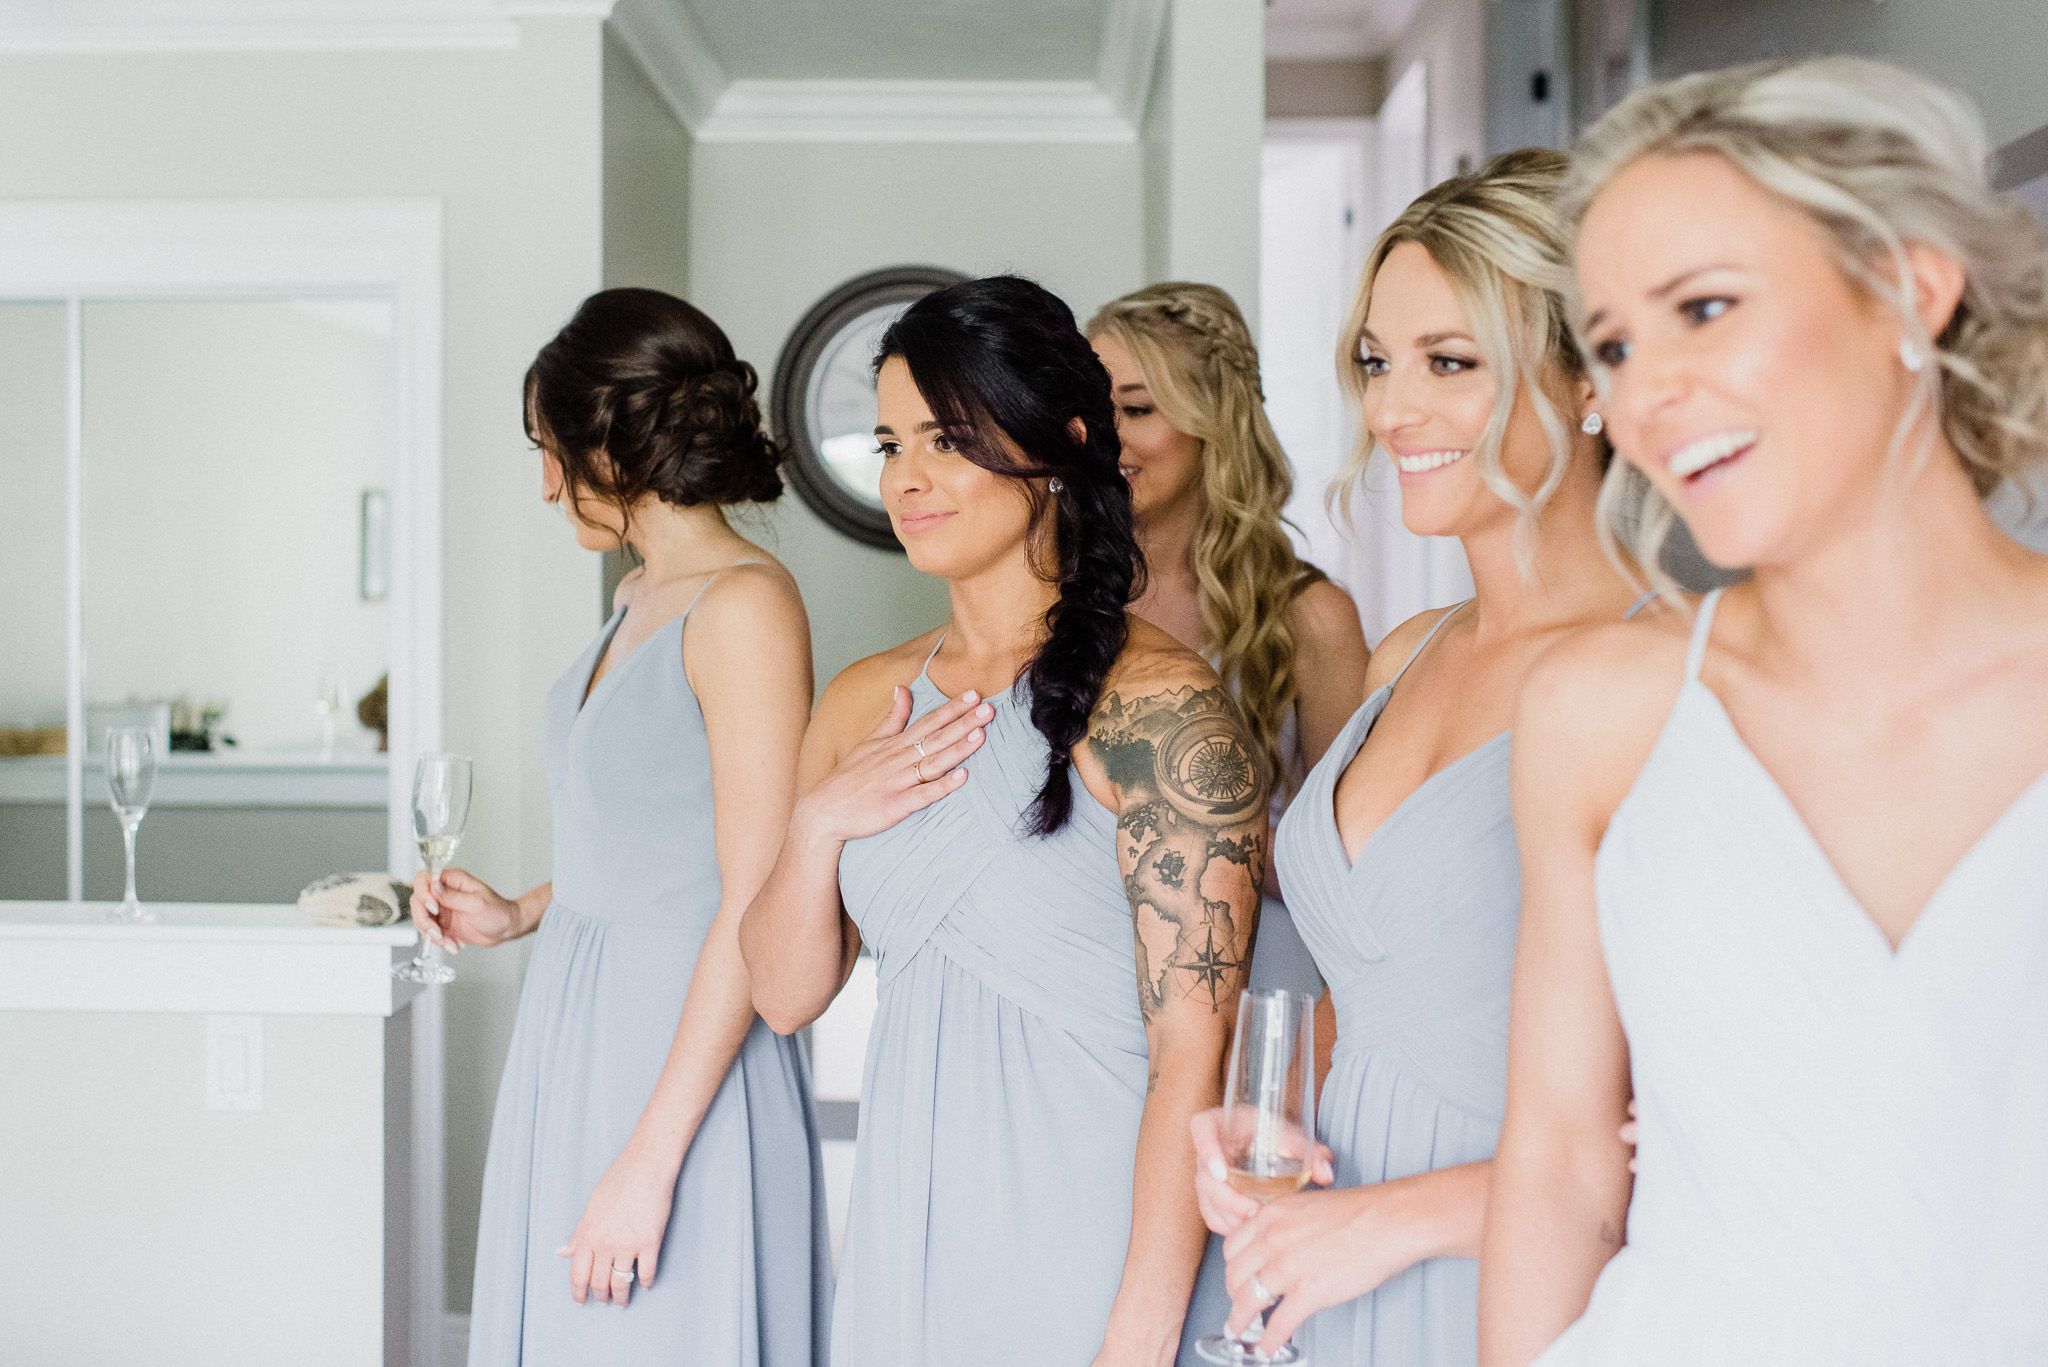 Mismatched grey and blue bridesmaids dresses by Jenn Kavanagh Photography